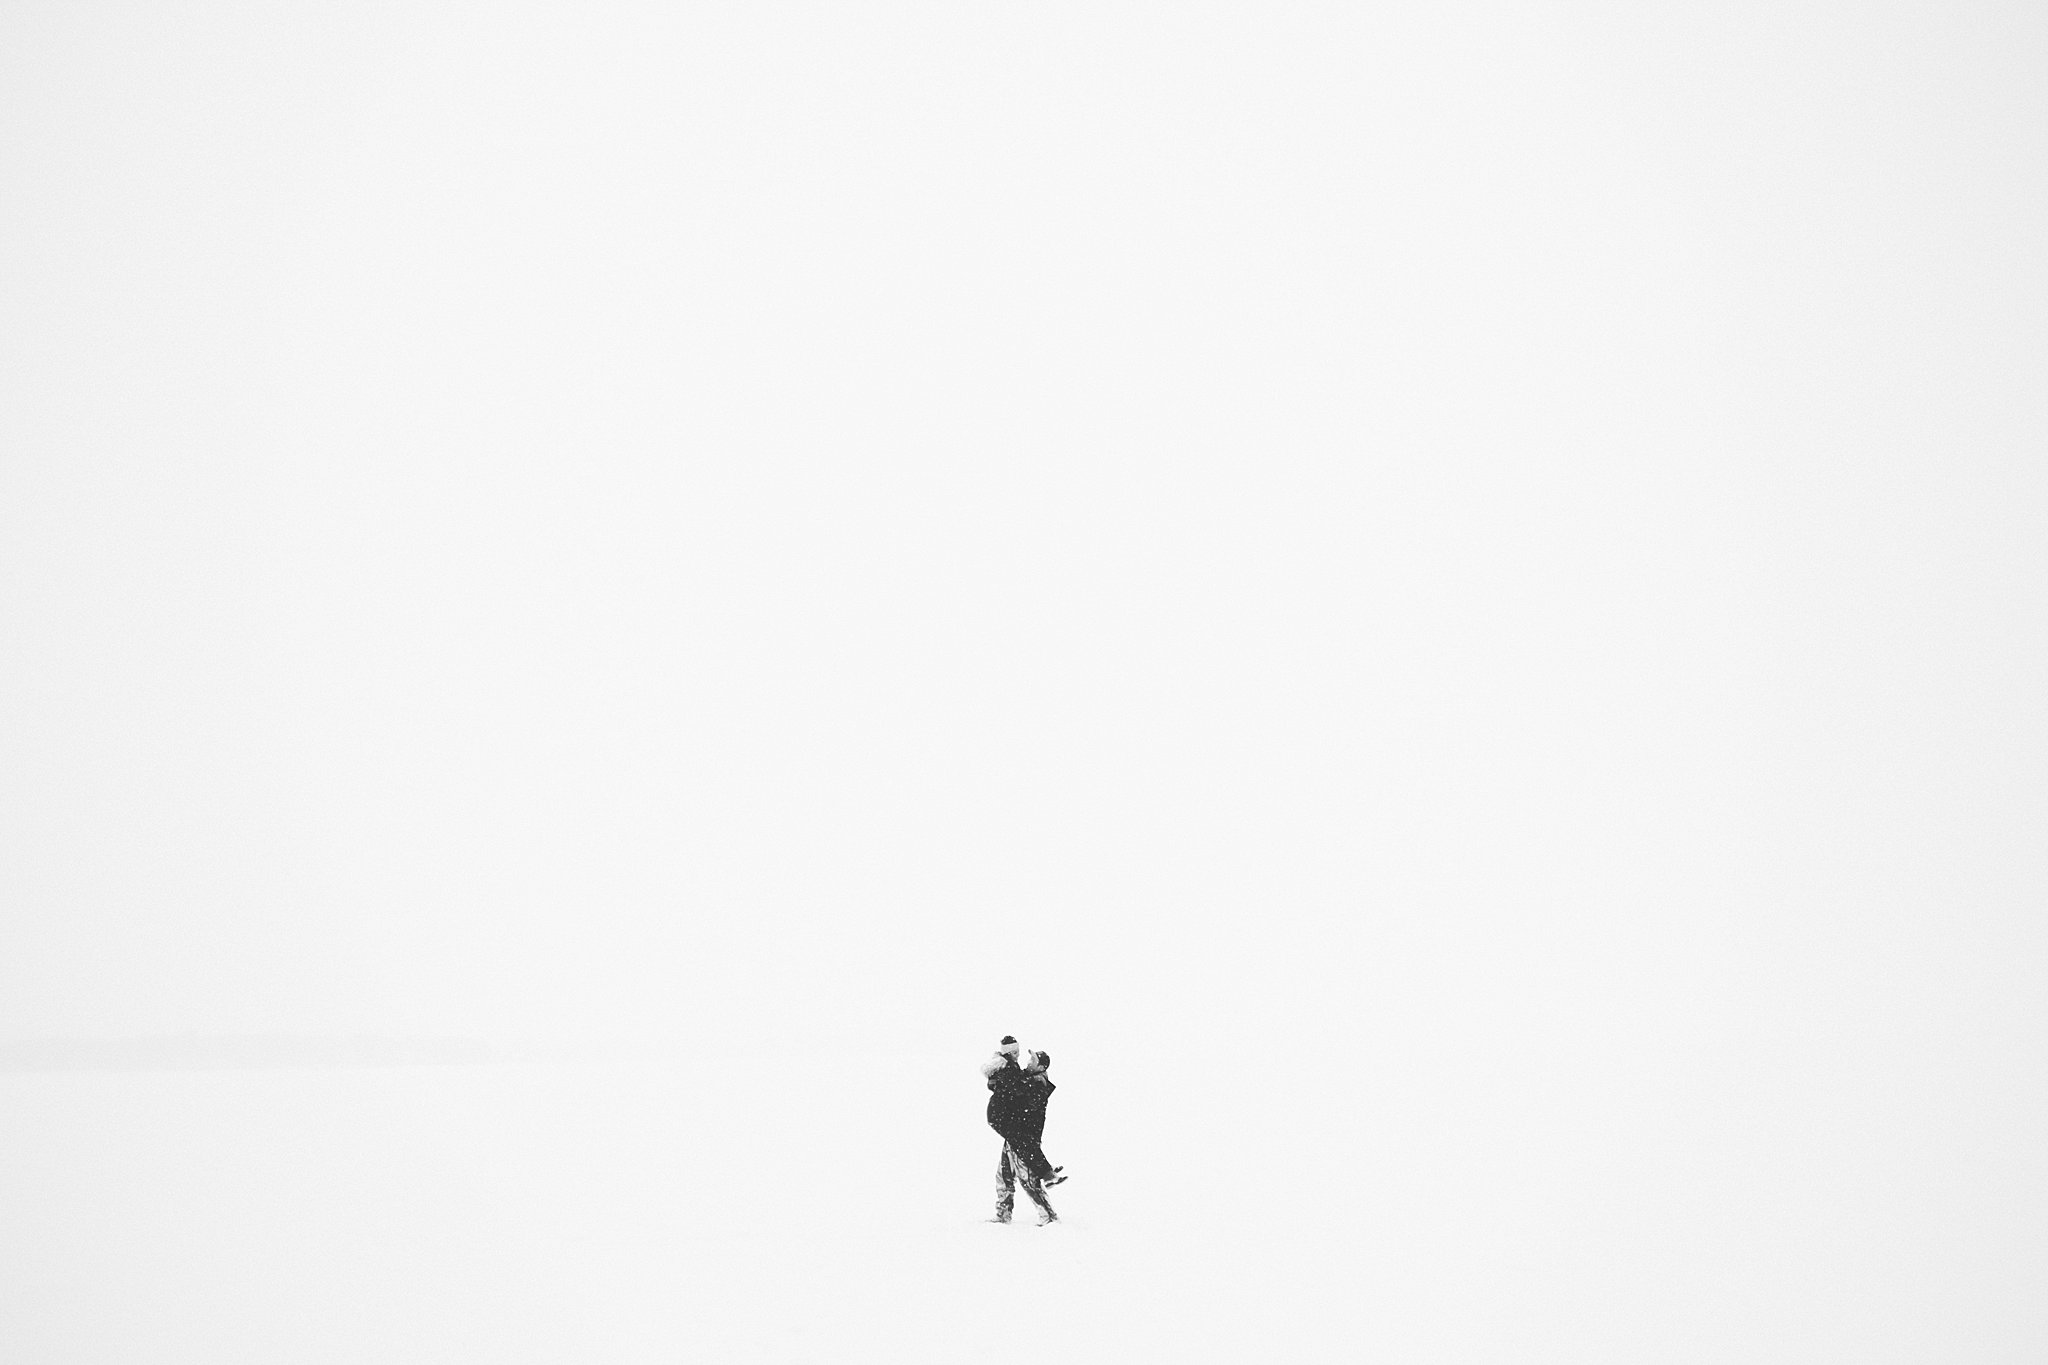 Copper Key Visuals Wisconsin Ice Fishing Engagement Session-12.jpg